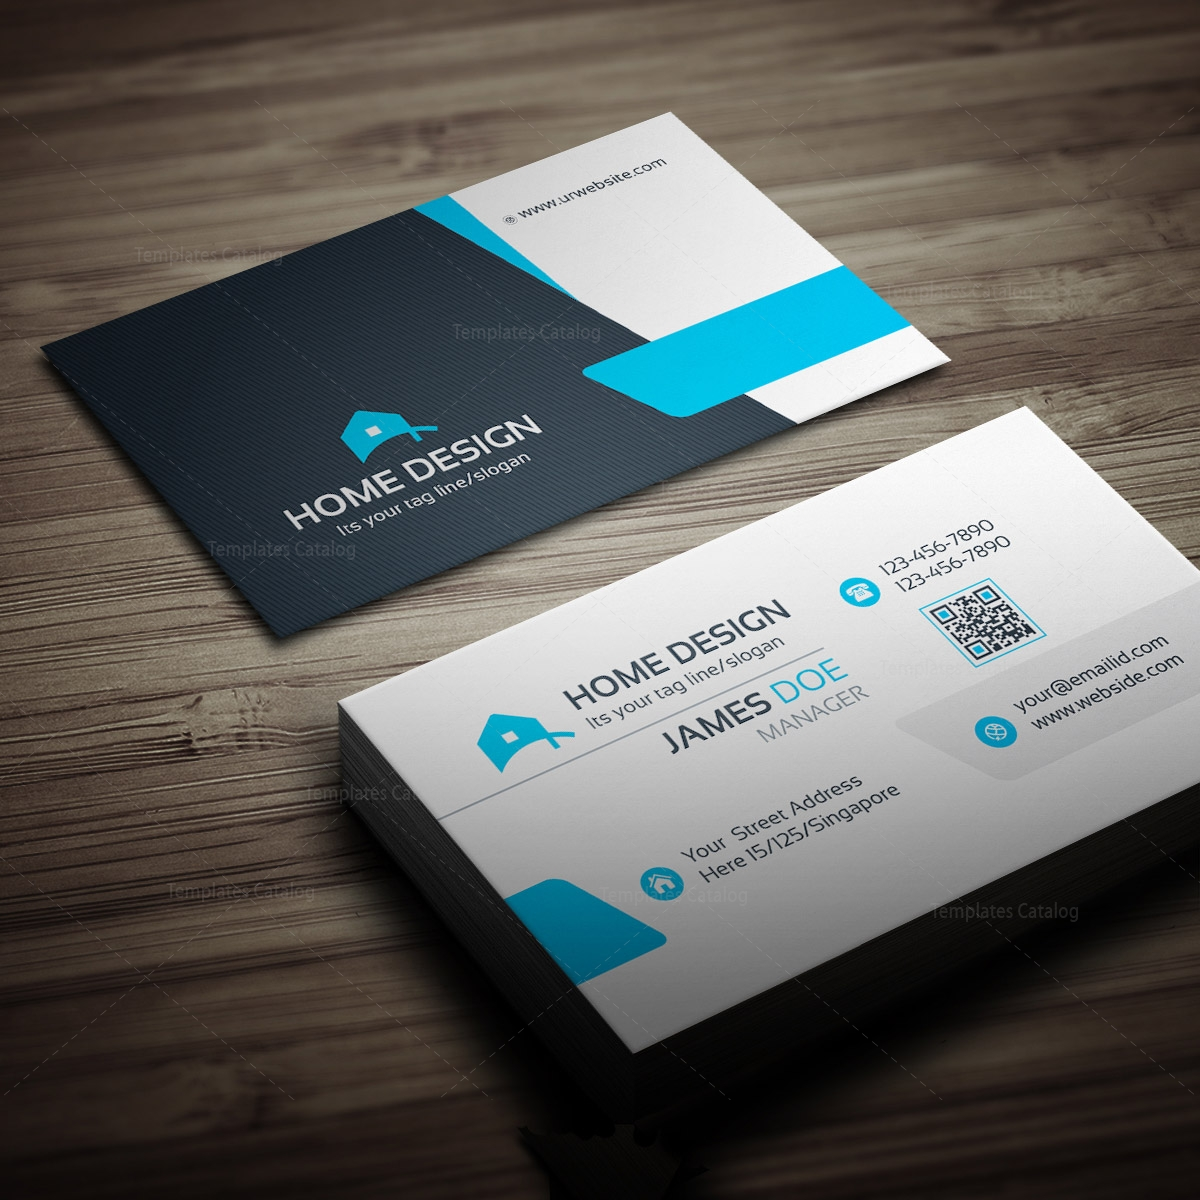 busniess card template - home design business card template 000258 template catalog